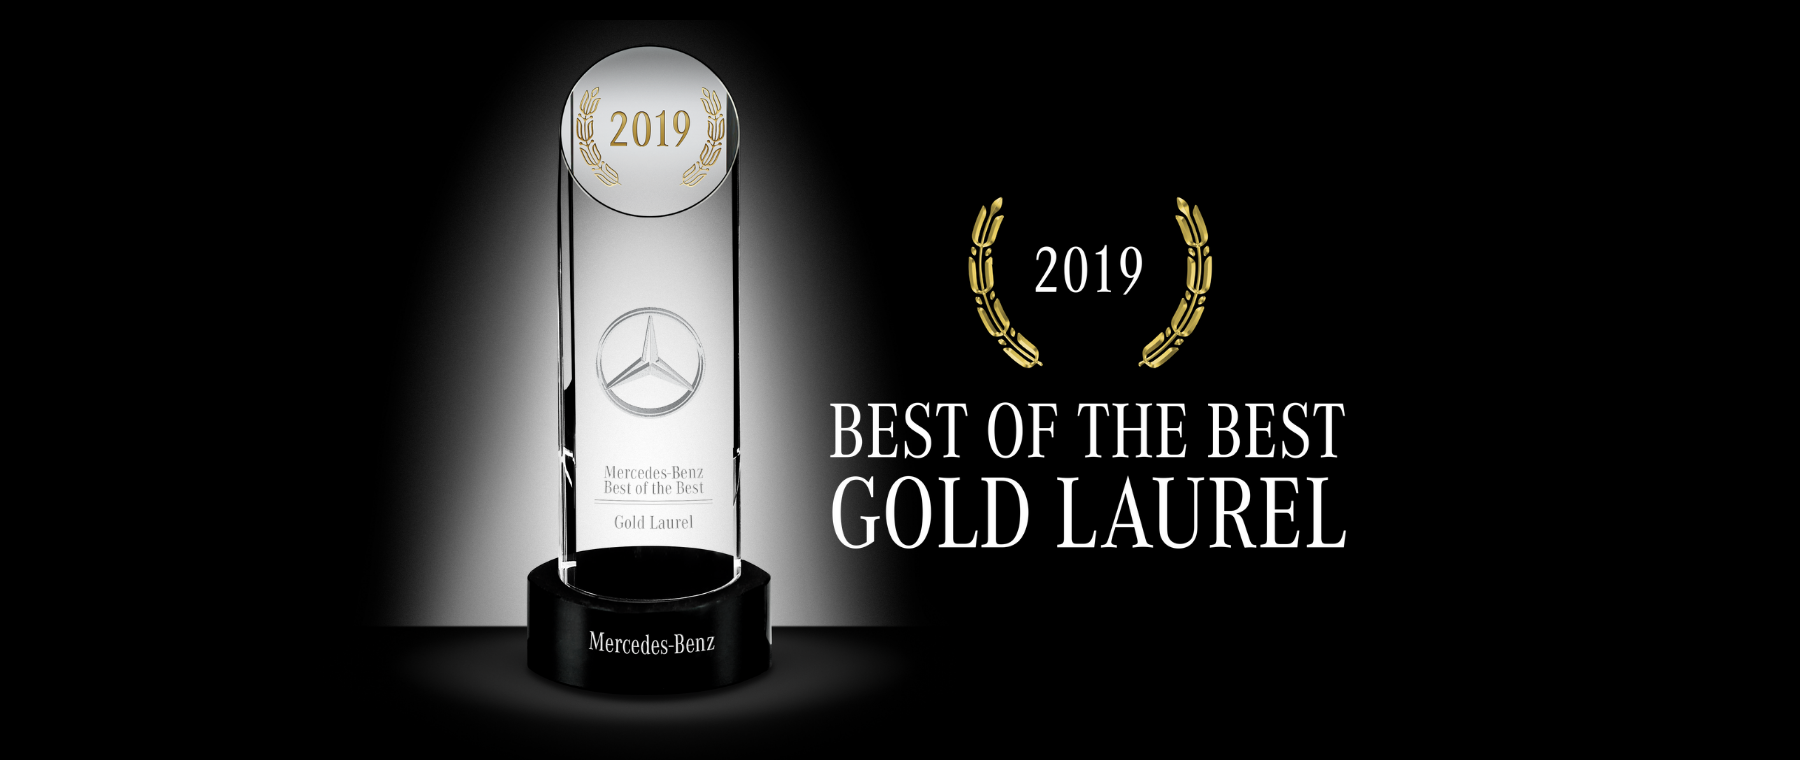 Gold Laurel Best of the Best